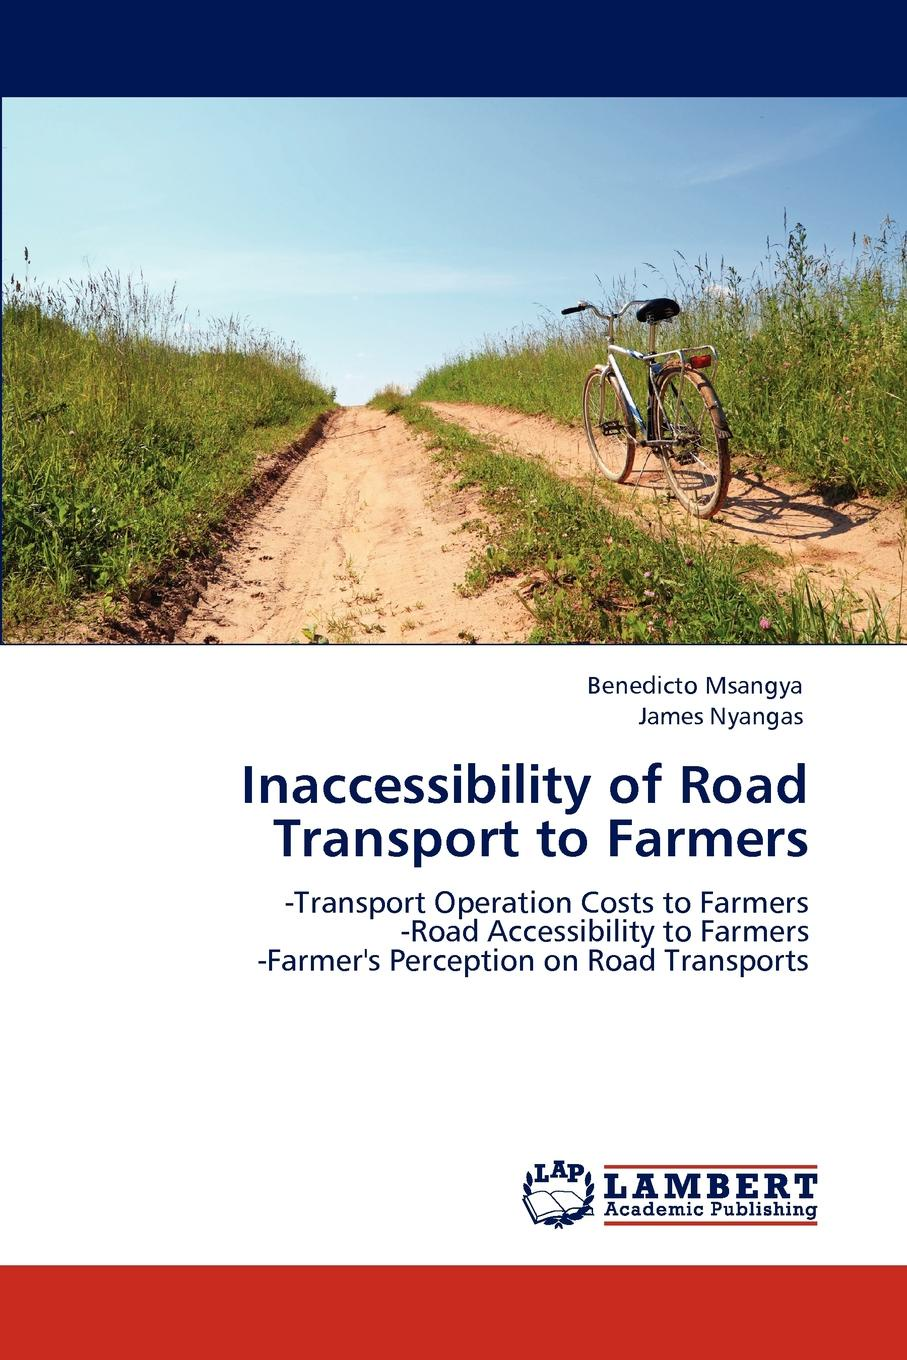 Benedicto Msangya, James Nyangas Inaccessibility of Road Transport to Farmers economic analysis of the rural labour markets in sudan